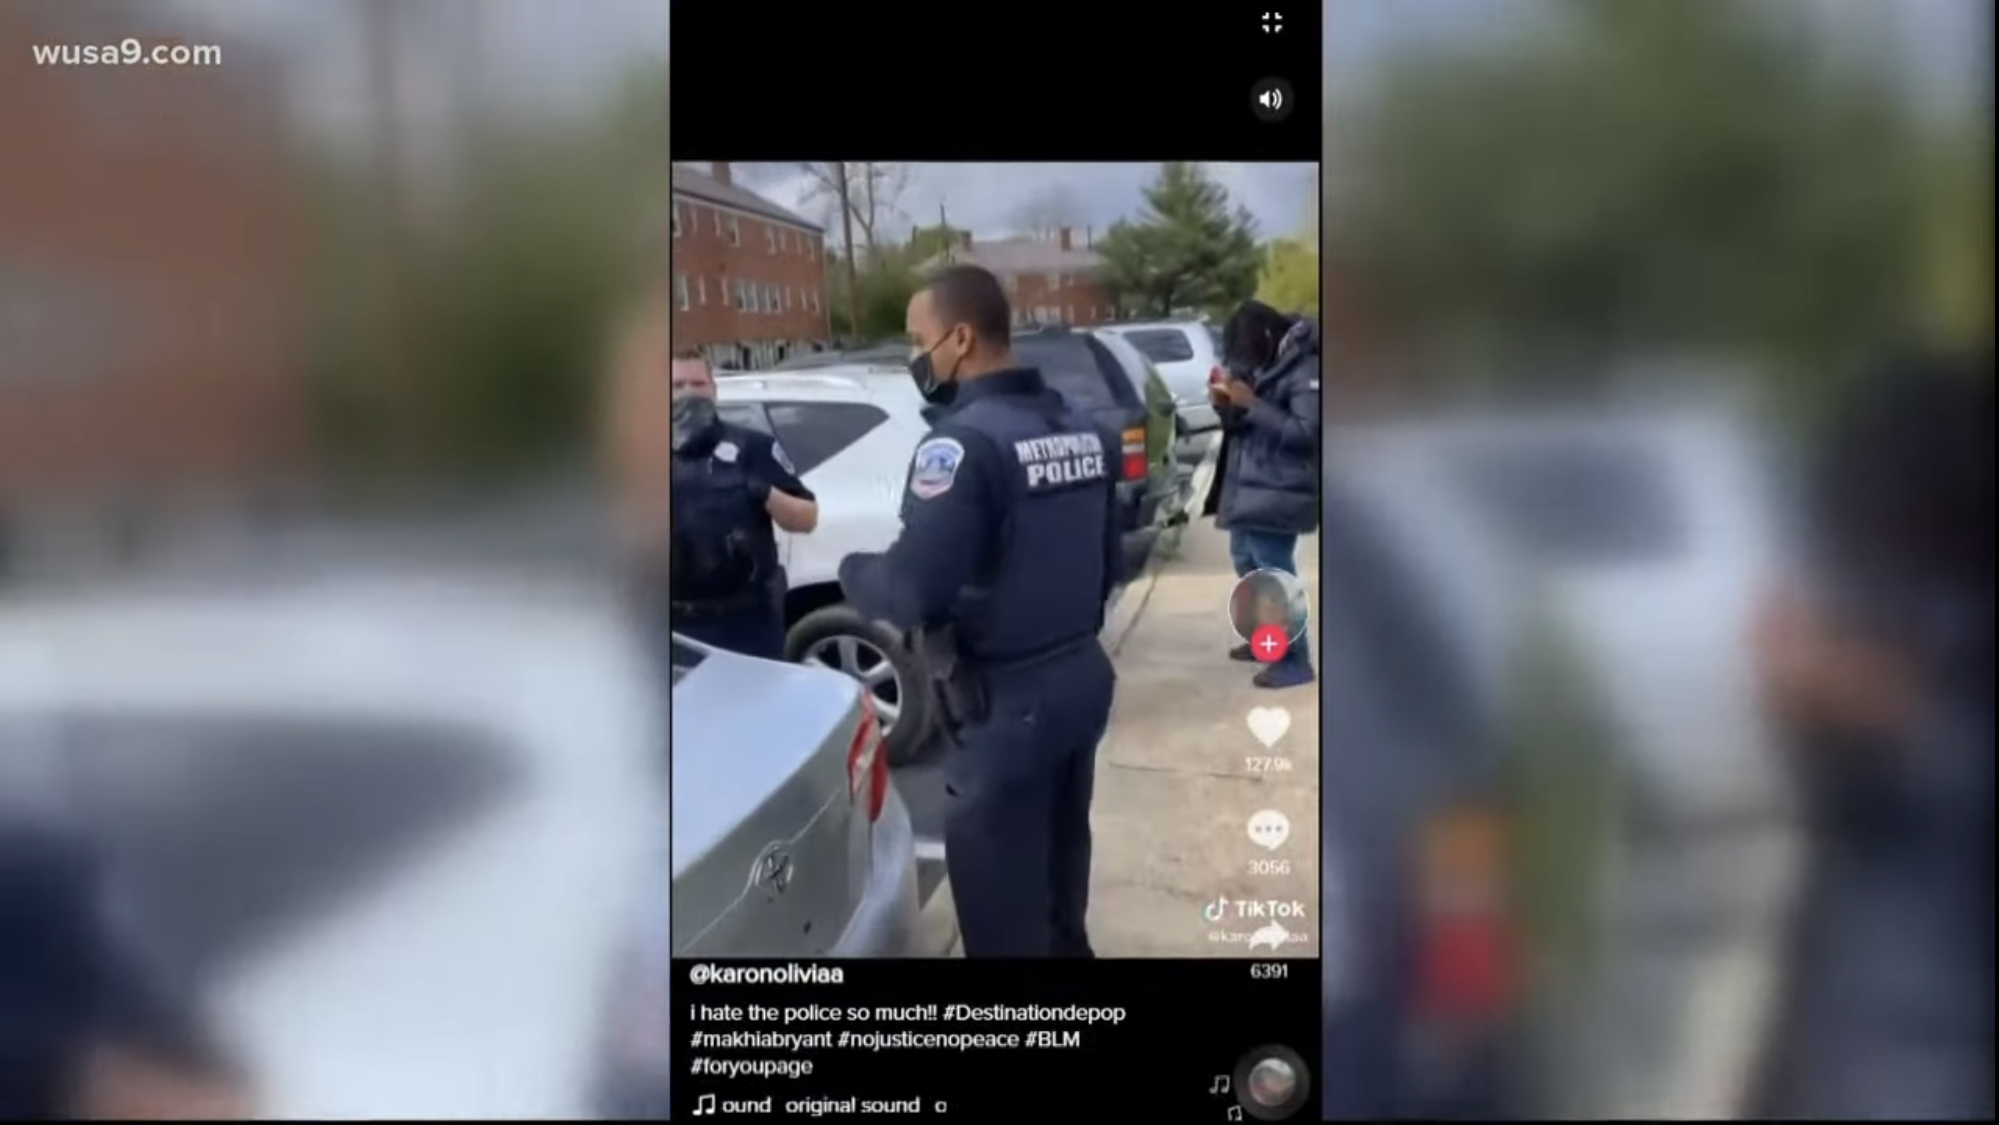 police-officer-has-great-response-to-individual-who-asks-are-yall-gonna-kill-me-like-bryant